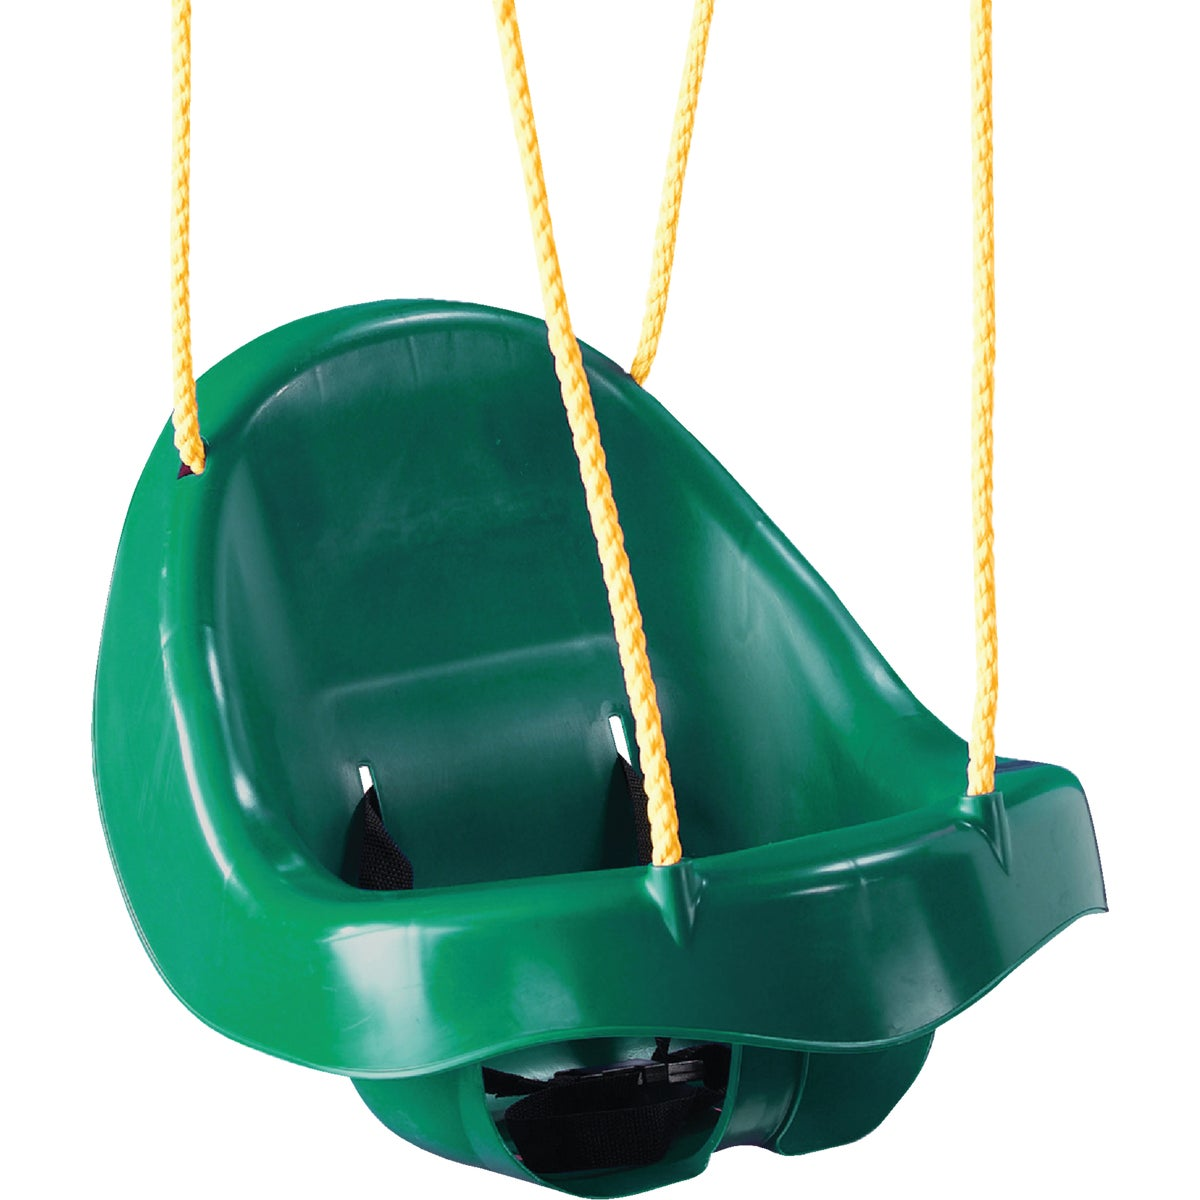 BLUE CHILD SEAT SWING - NE5027 by Swing N Slide Corp